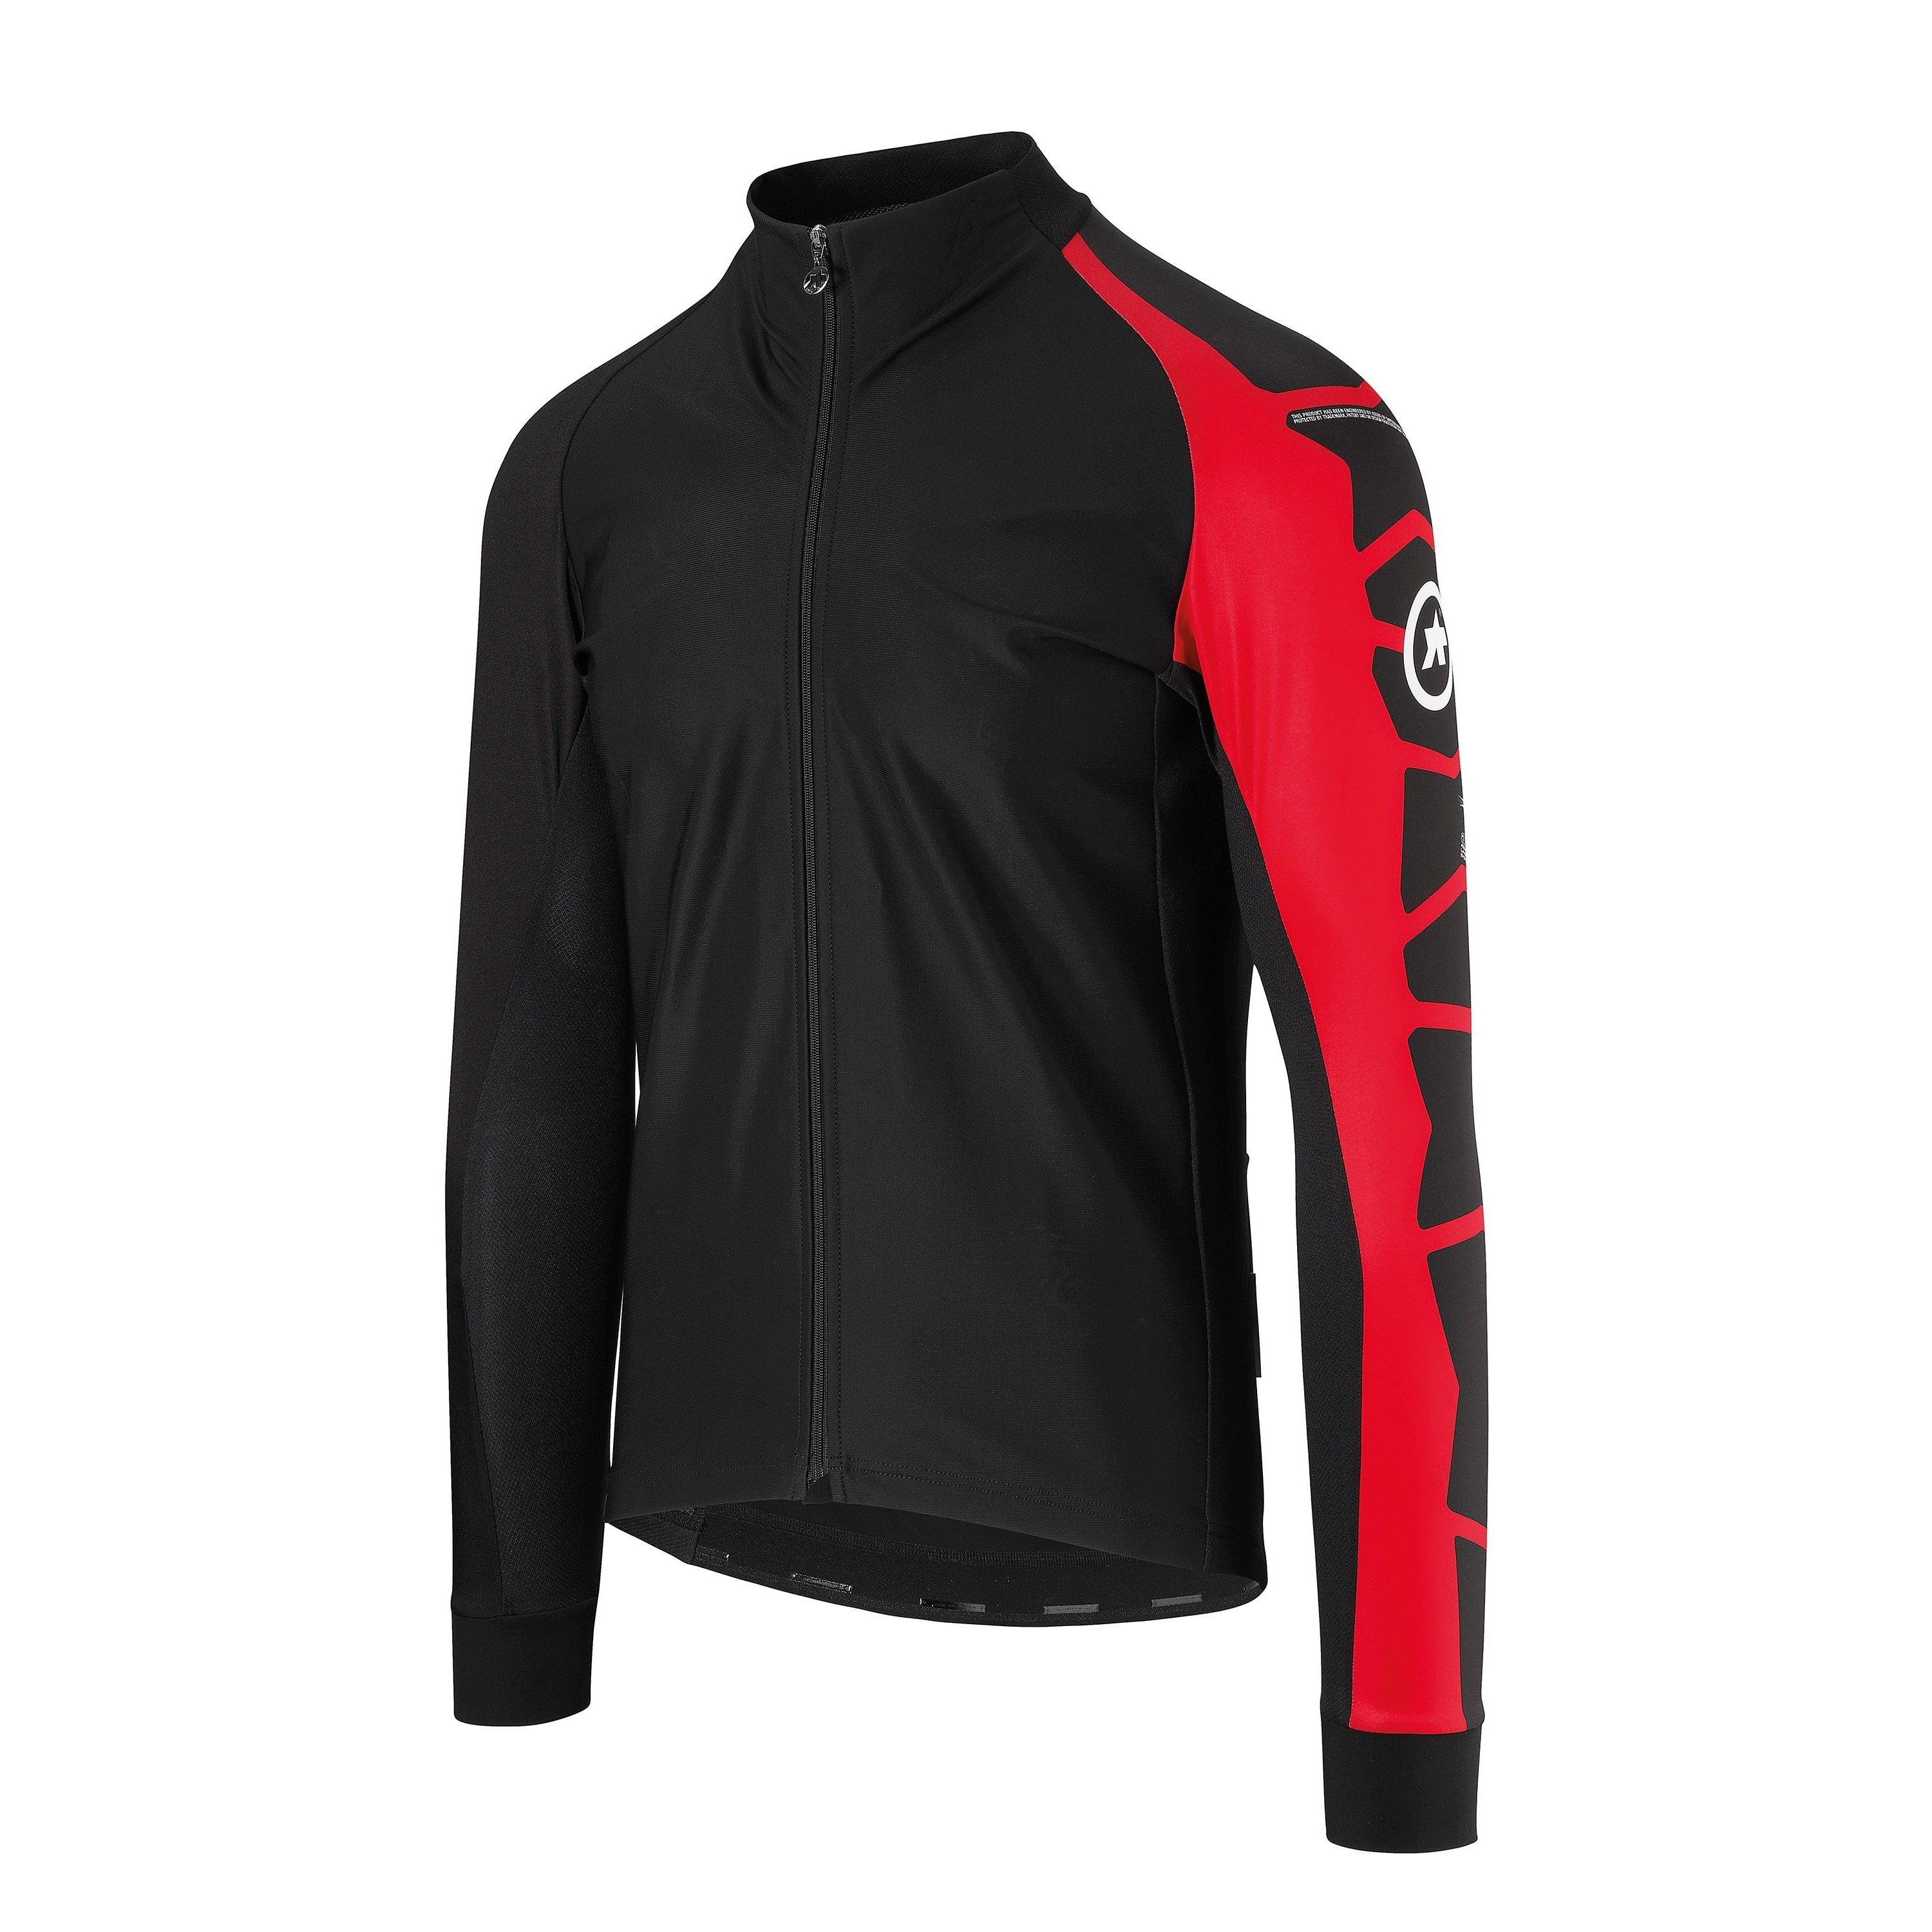 Chaqueta Assos IJ. MILLEINTERMEDIATE Evo7. National Red. Hombre